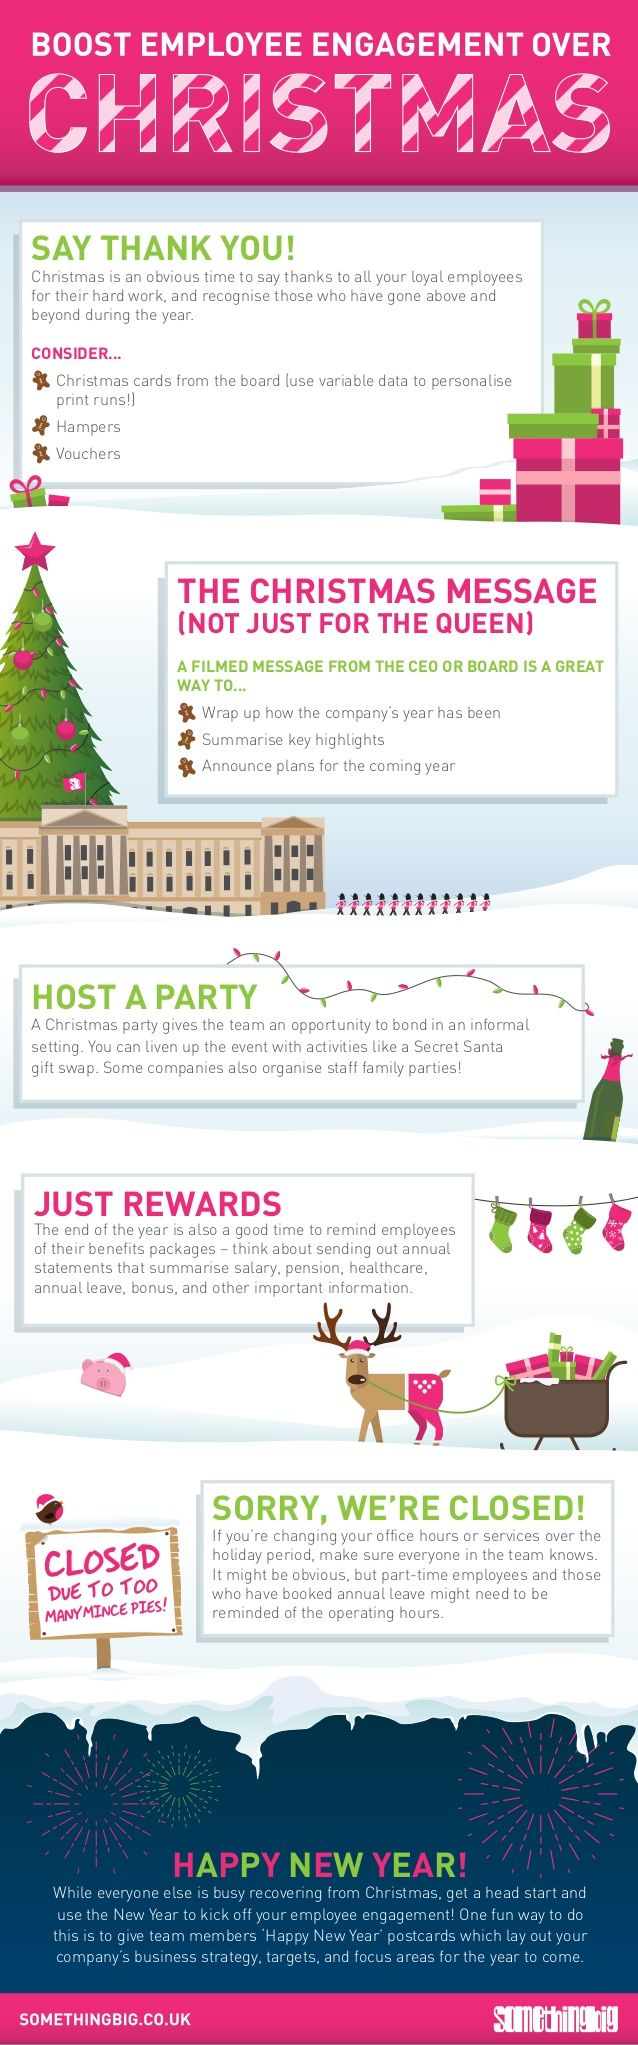 Boost your internal comms and employee engagement this christmas season